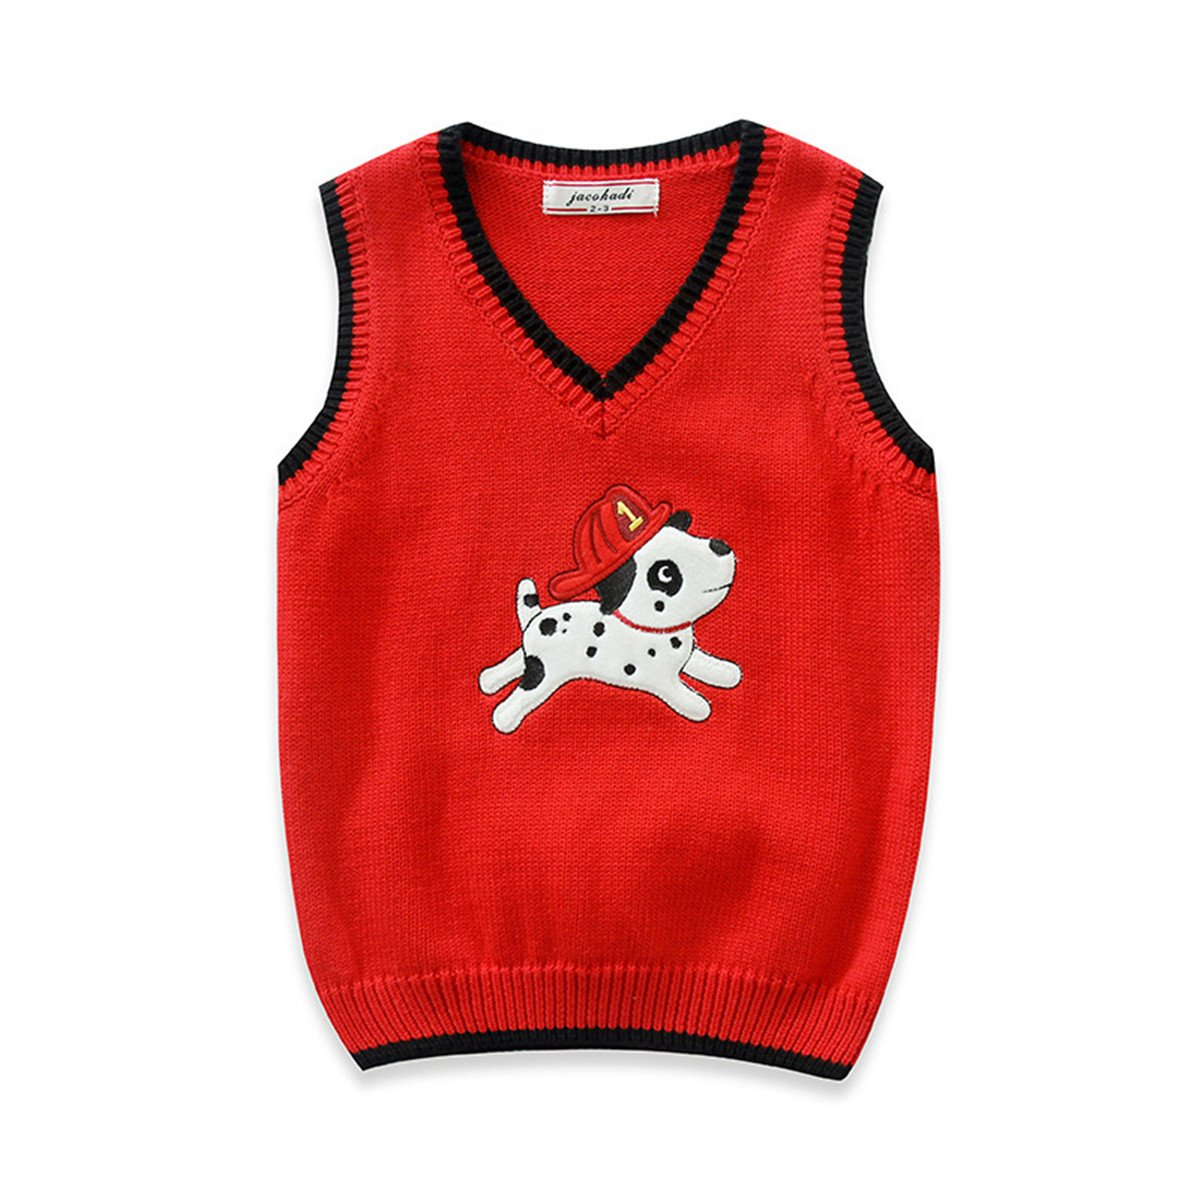 JELEUON Toddler Kids Baby Unisex V- Neck Cute Dog Print Knitted Vest Sweater Pullover VcDEDDsni6